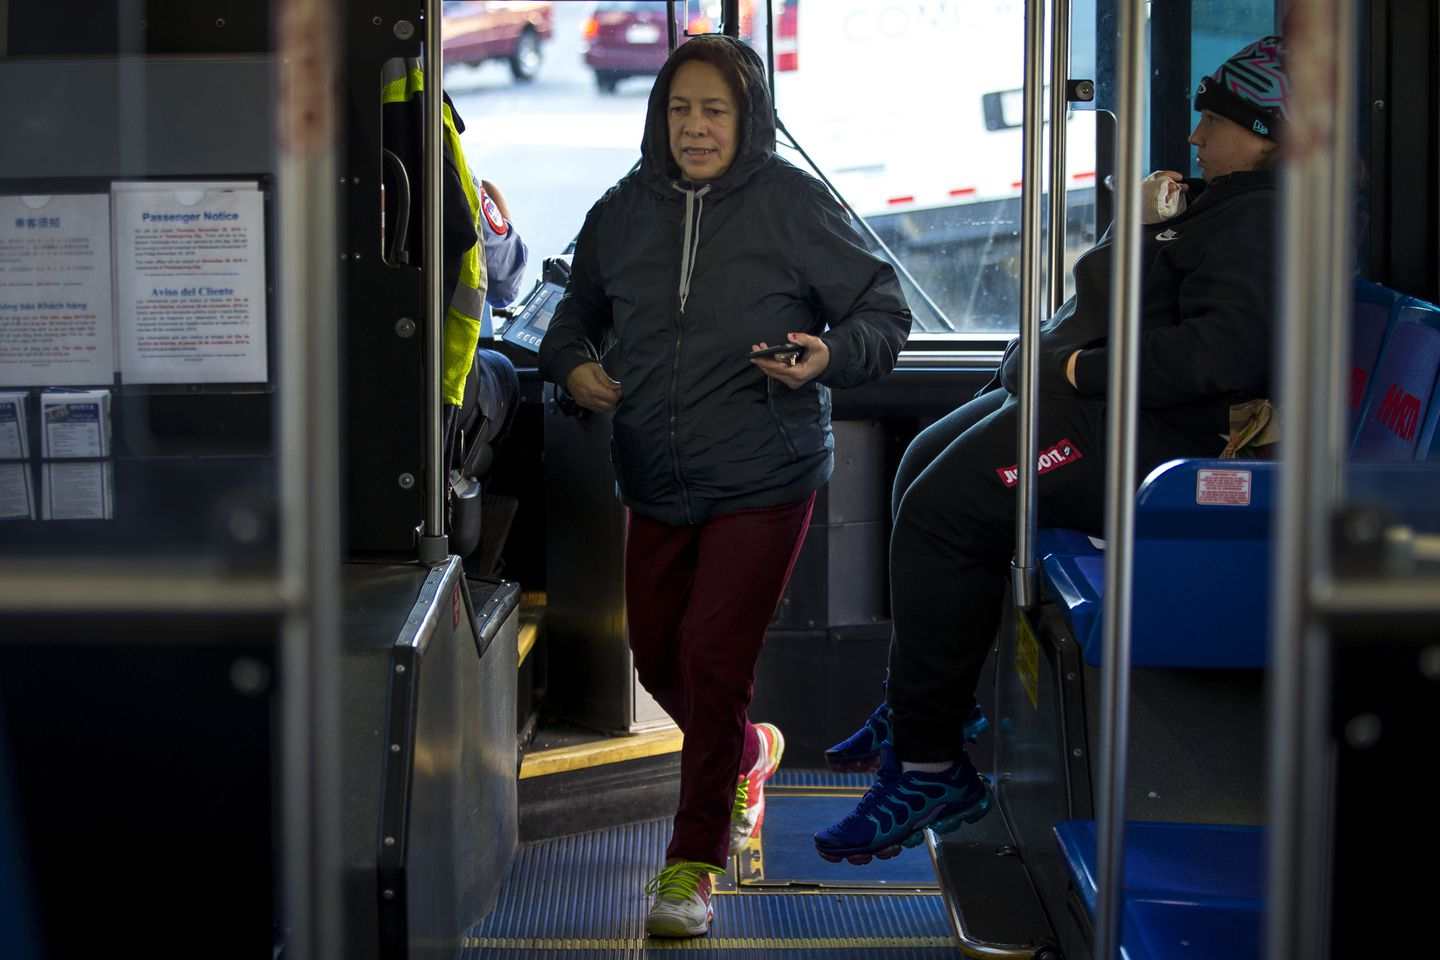 Francisca Segura rides one of three subsidized bus routes in Lawrence.